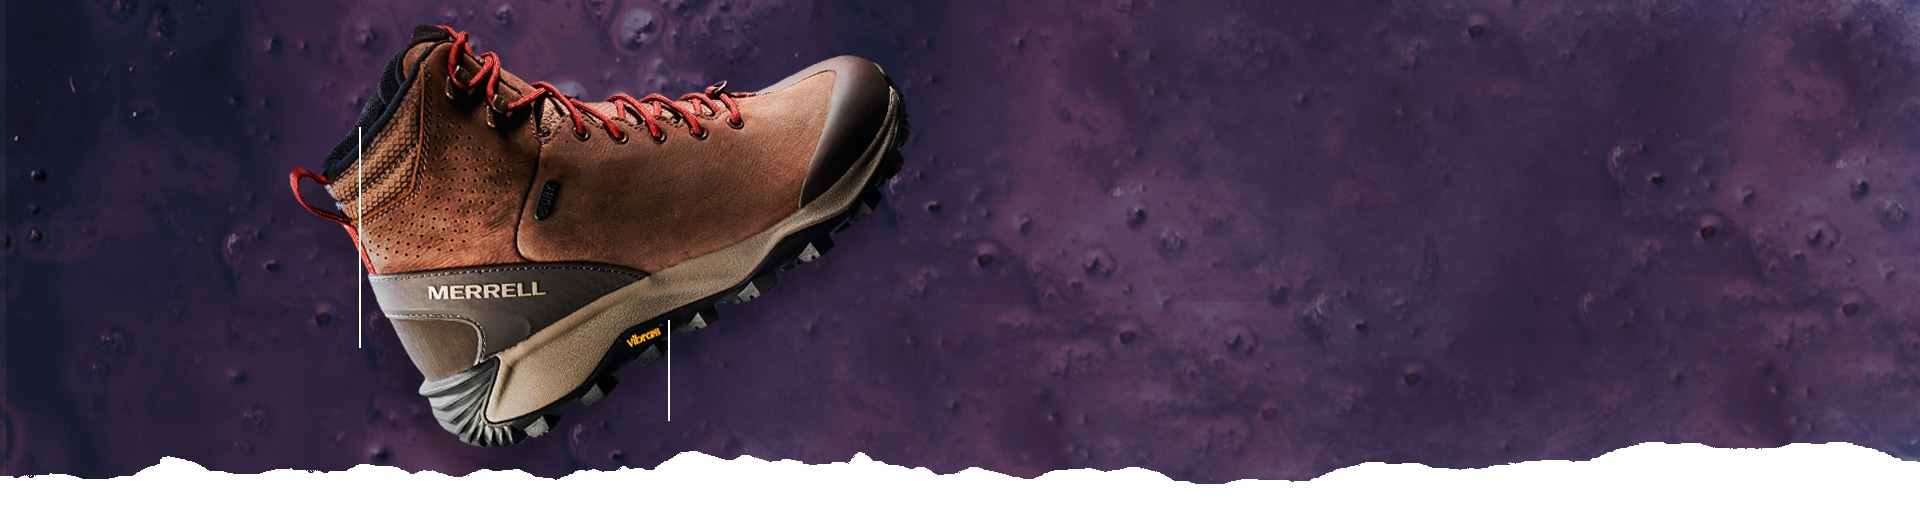 Merrell Thermo Glacier boot over a purple moon-like surface.